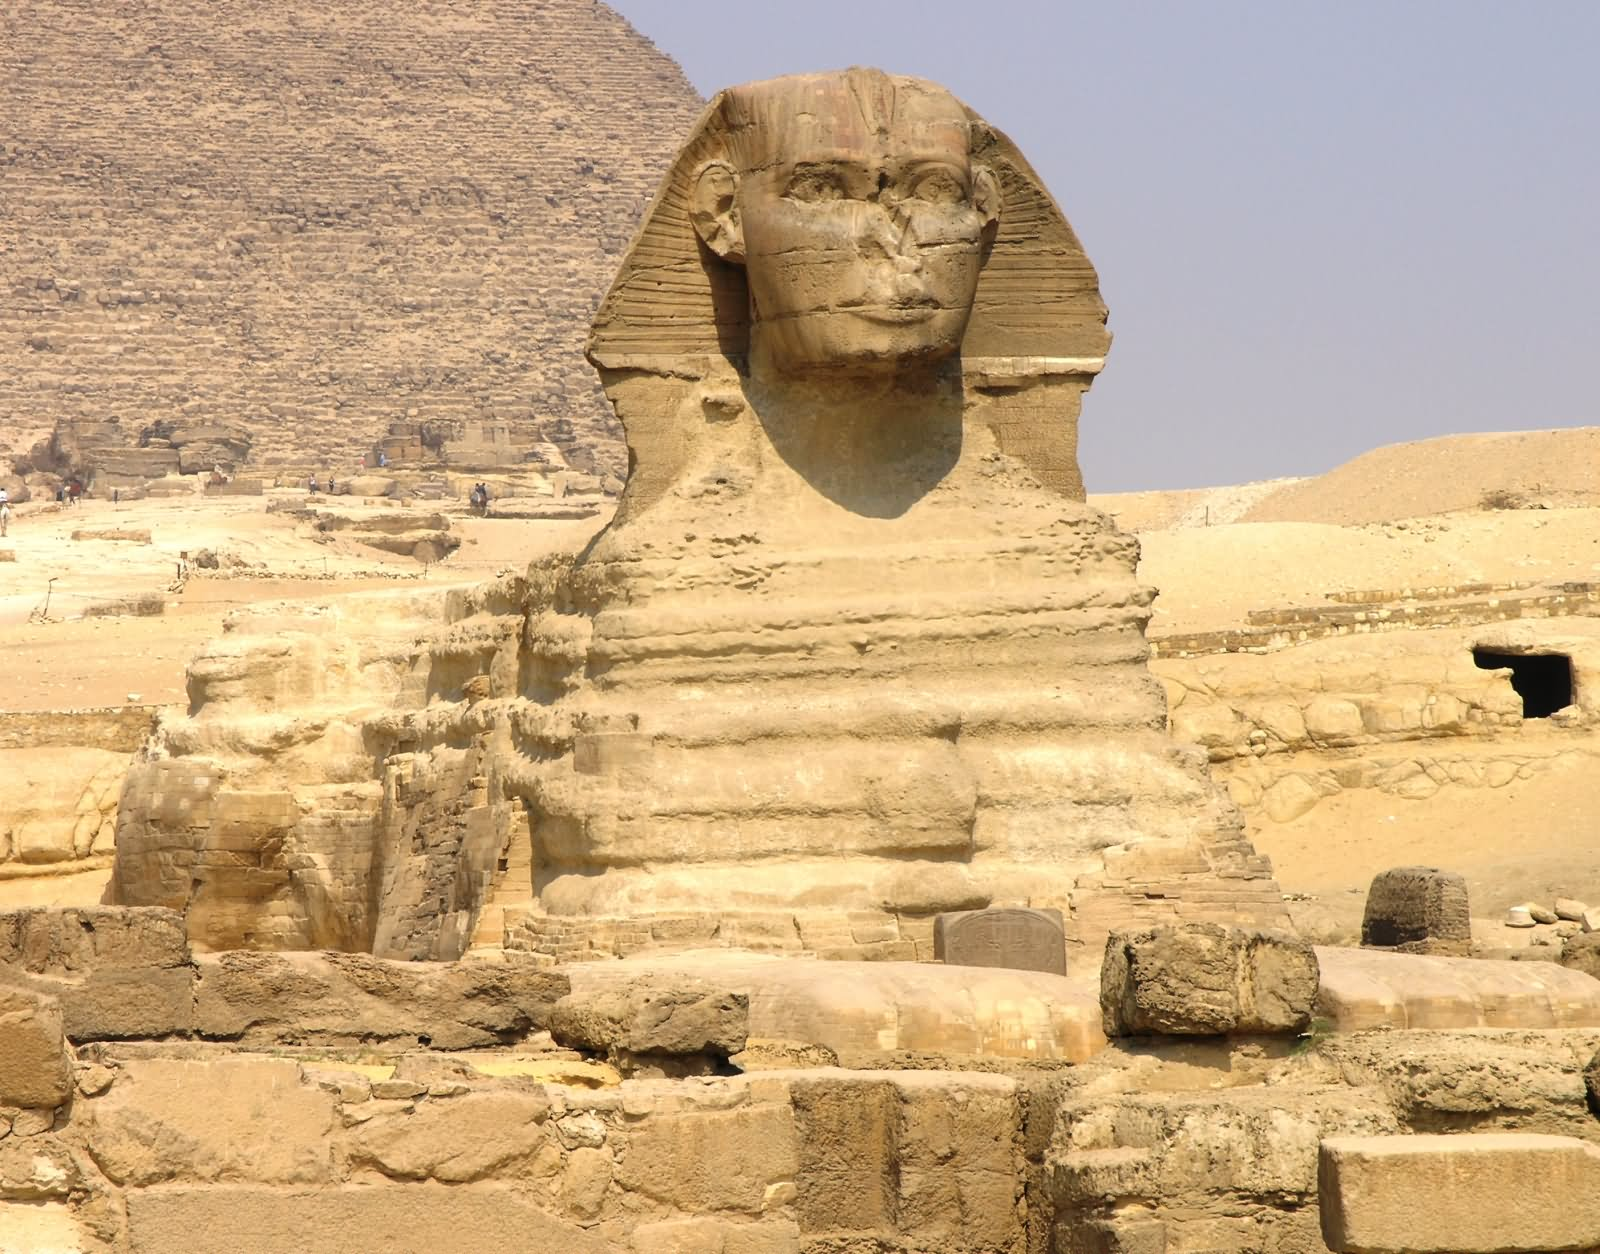 the great sphinx of egypt Ancient egyptians built the pyramids and the great sphinx at giza, just outside of today's cairo photograph by javarman, dreamstime  juice shops are common in cairo, the capital of egypt.